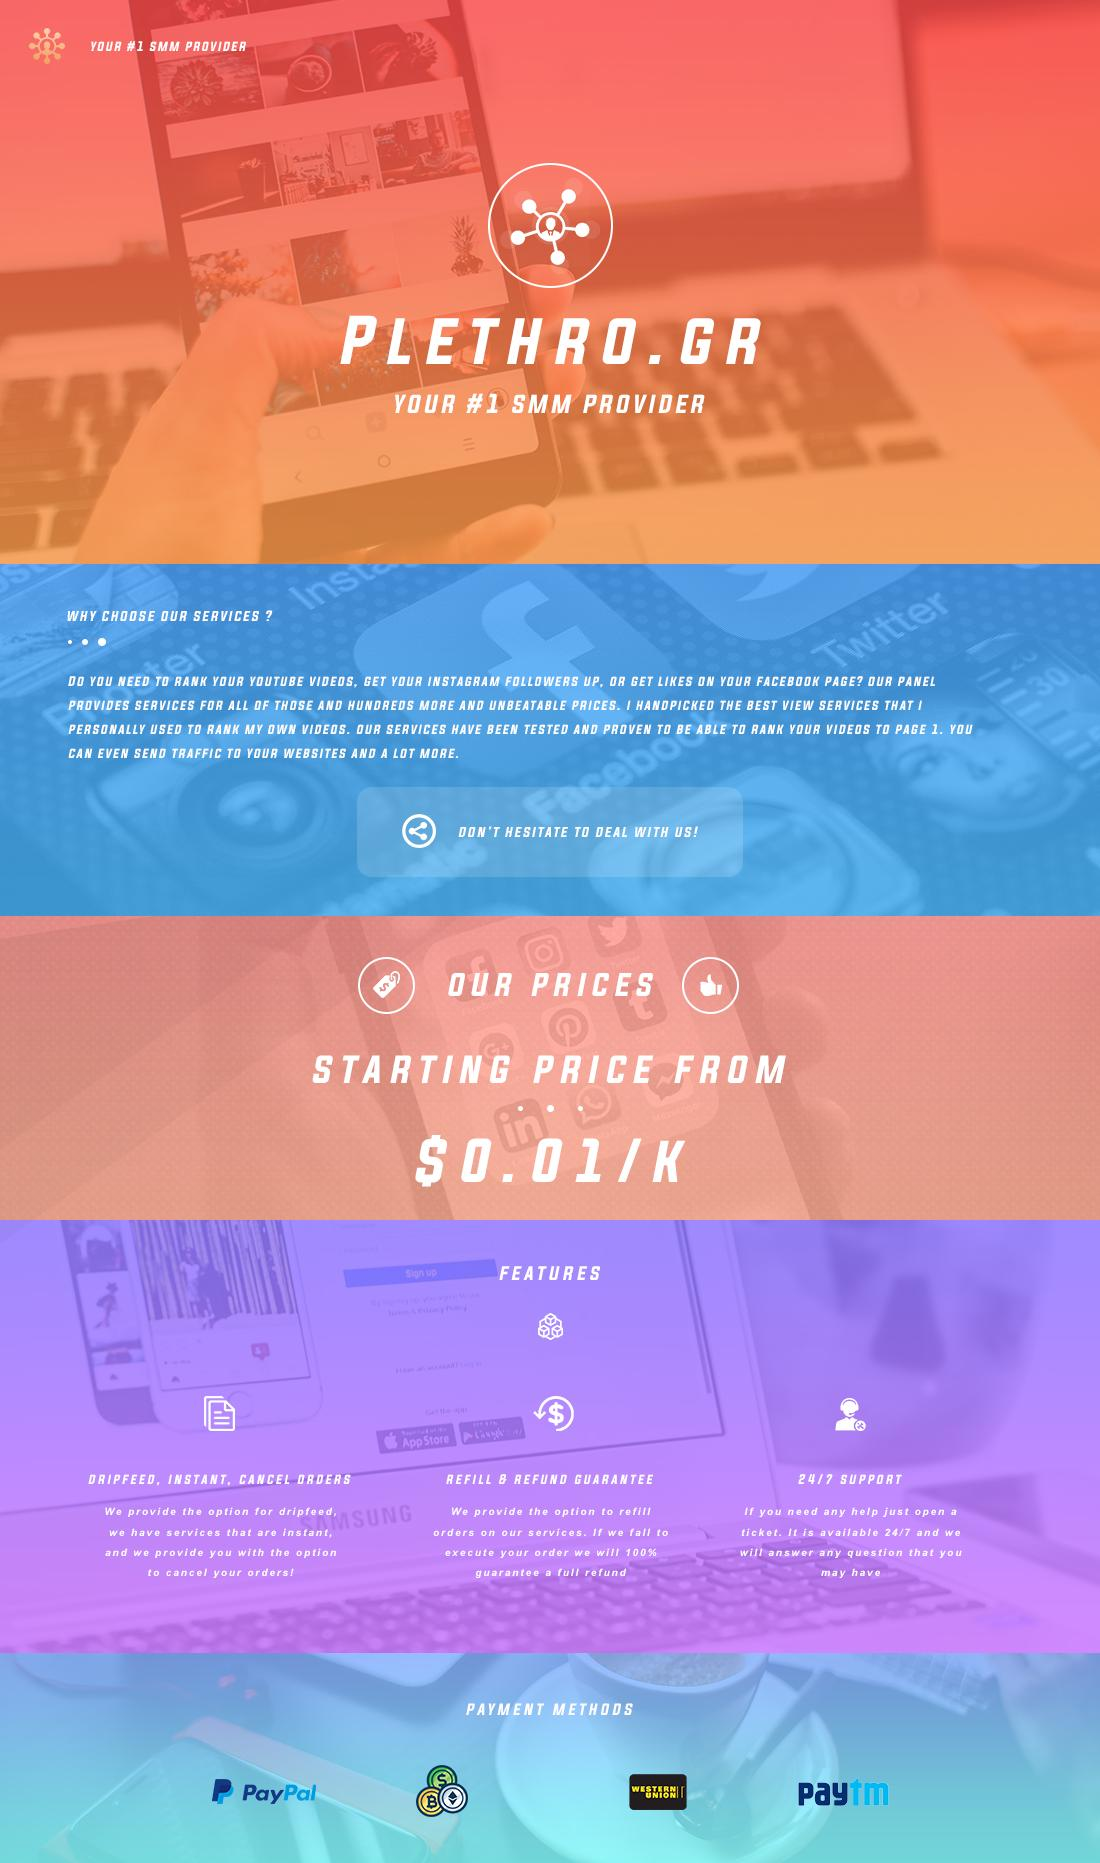 PLETHRO GR | All in One SMM Panel-Prices from $0 02|Instagram